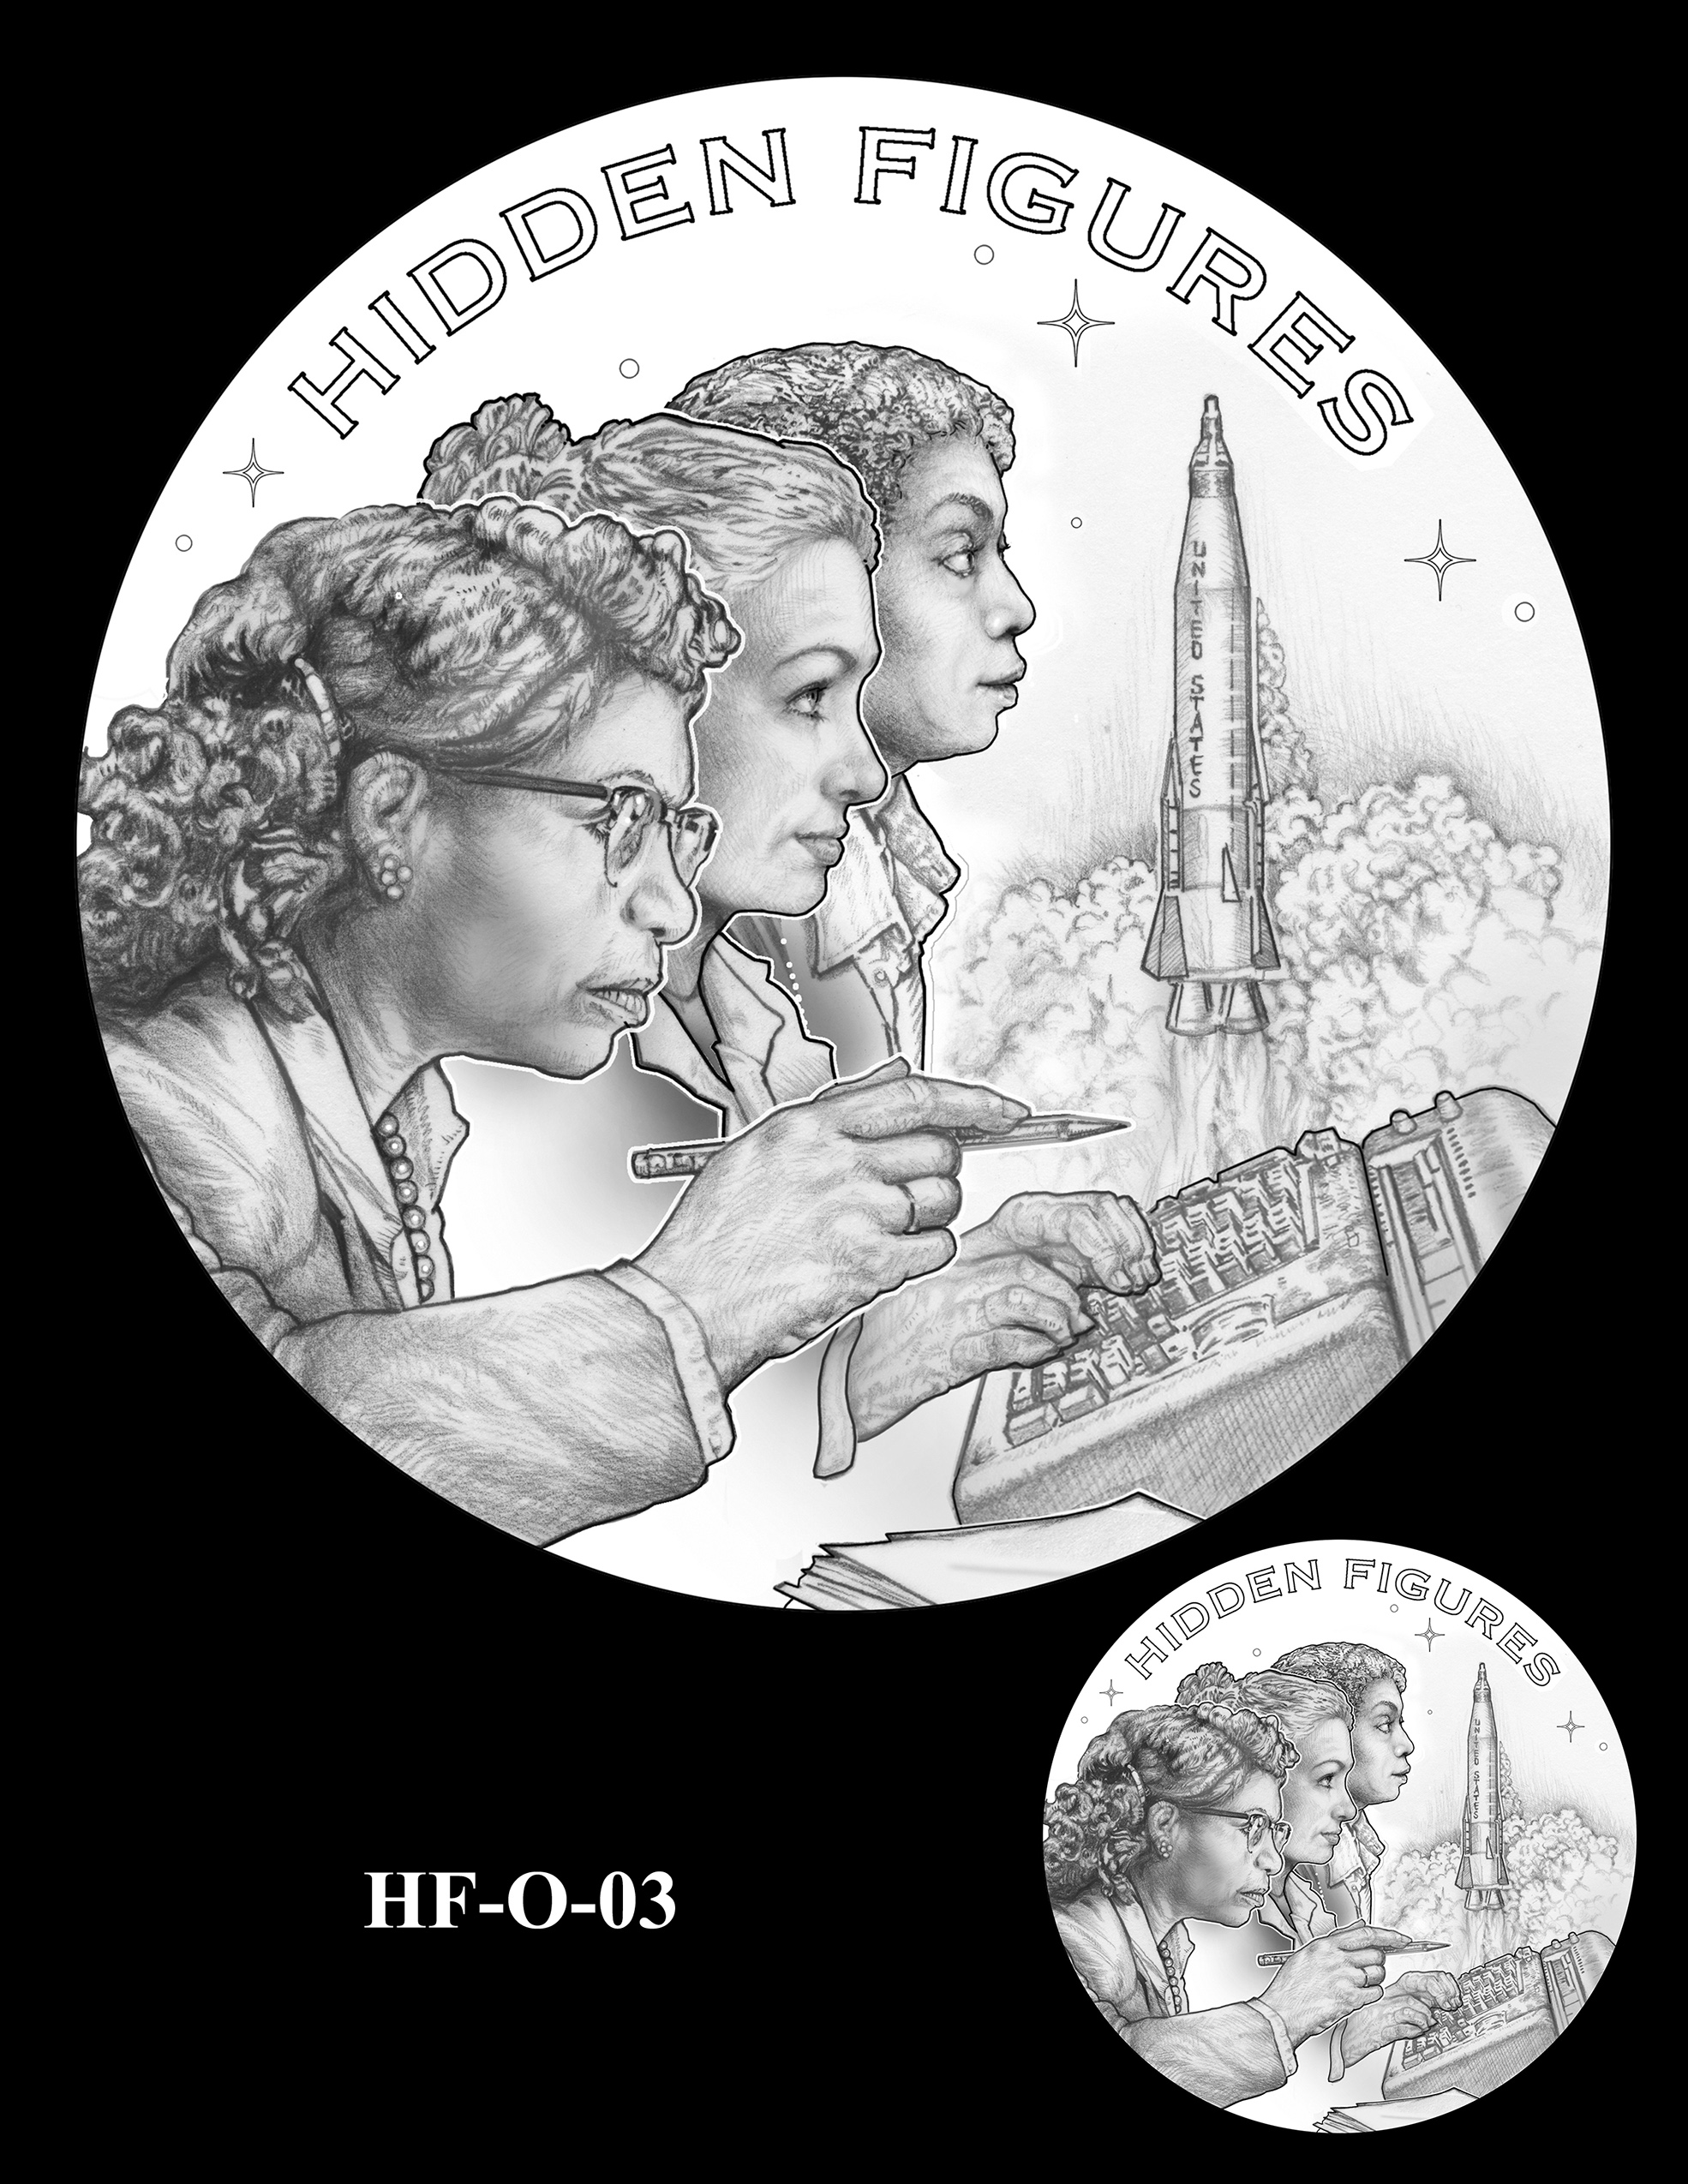 HF-O-03 -- Hidden Figures Group Congressional Gold Medal